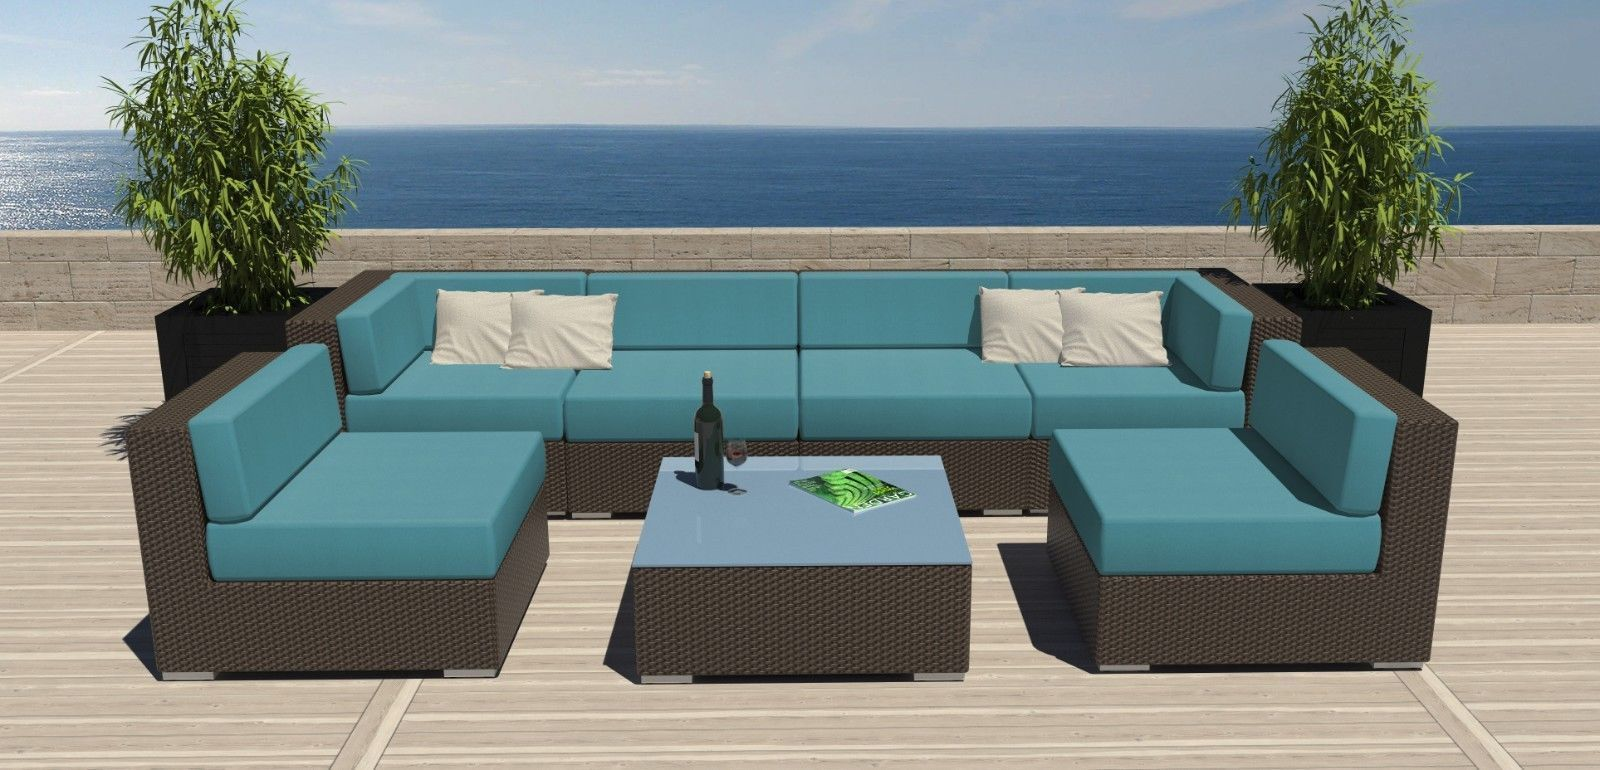 Use Modern Patio Furniture with Blue Lather Seat and Wicker Sofas on Laminate Wooden Deck